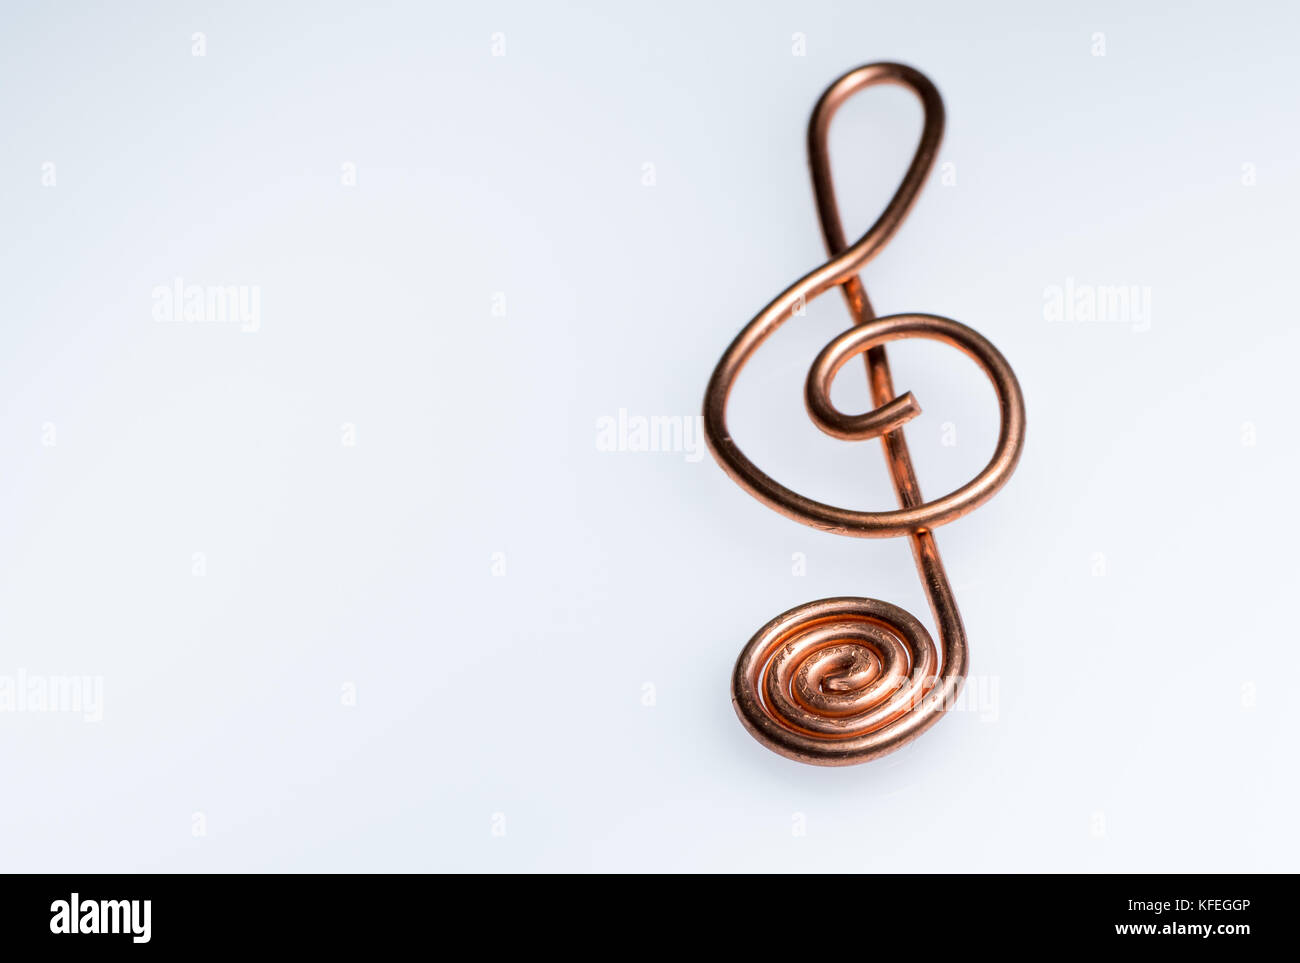 Closeup of a treble clef made of bent copper wire stock photo closeup of a treble clef made of bent copper wire buycottarizona Image collections